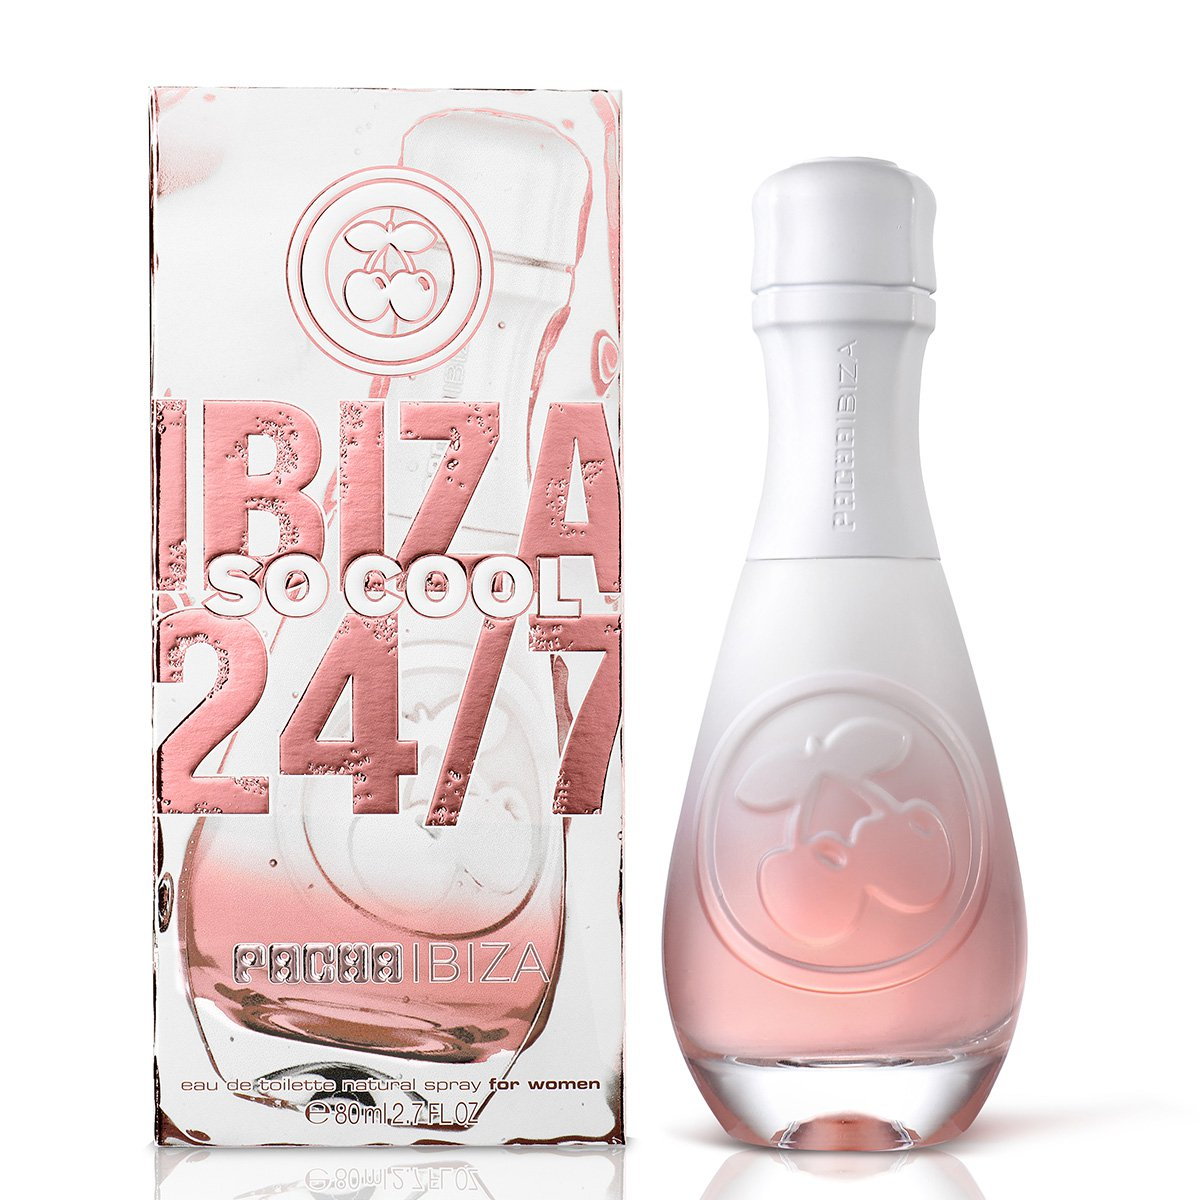 Perfume Pacha Ibiza 24/7 So Cool Feminino Eau de Toilette 80ml